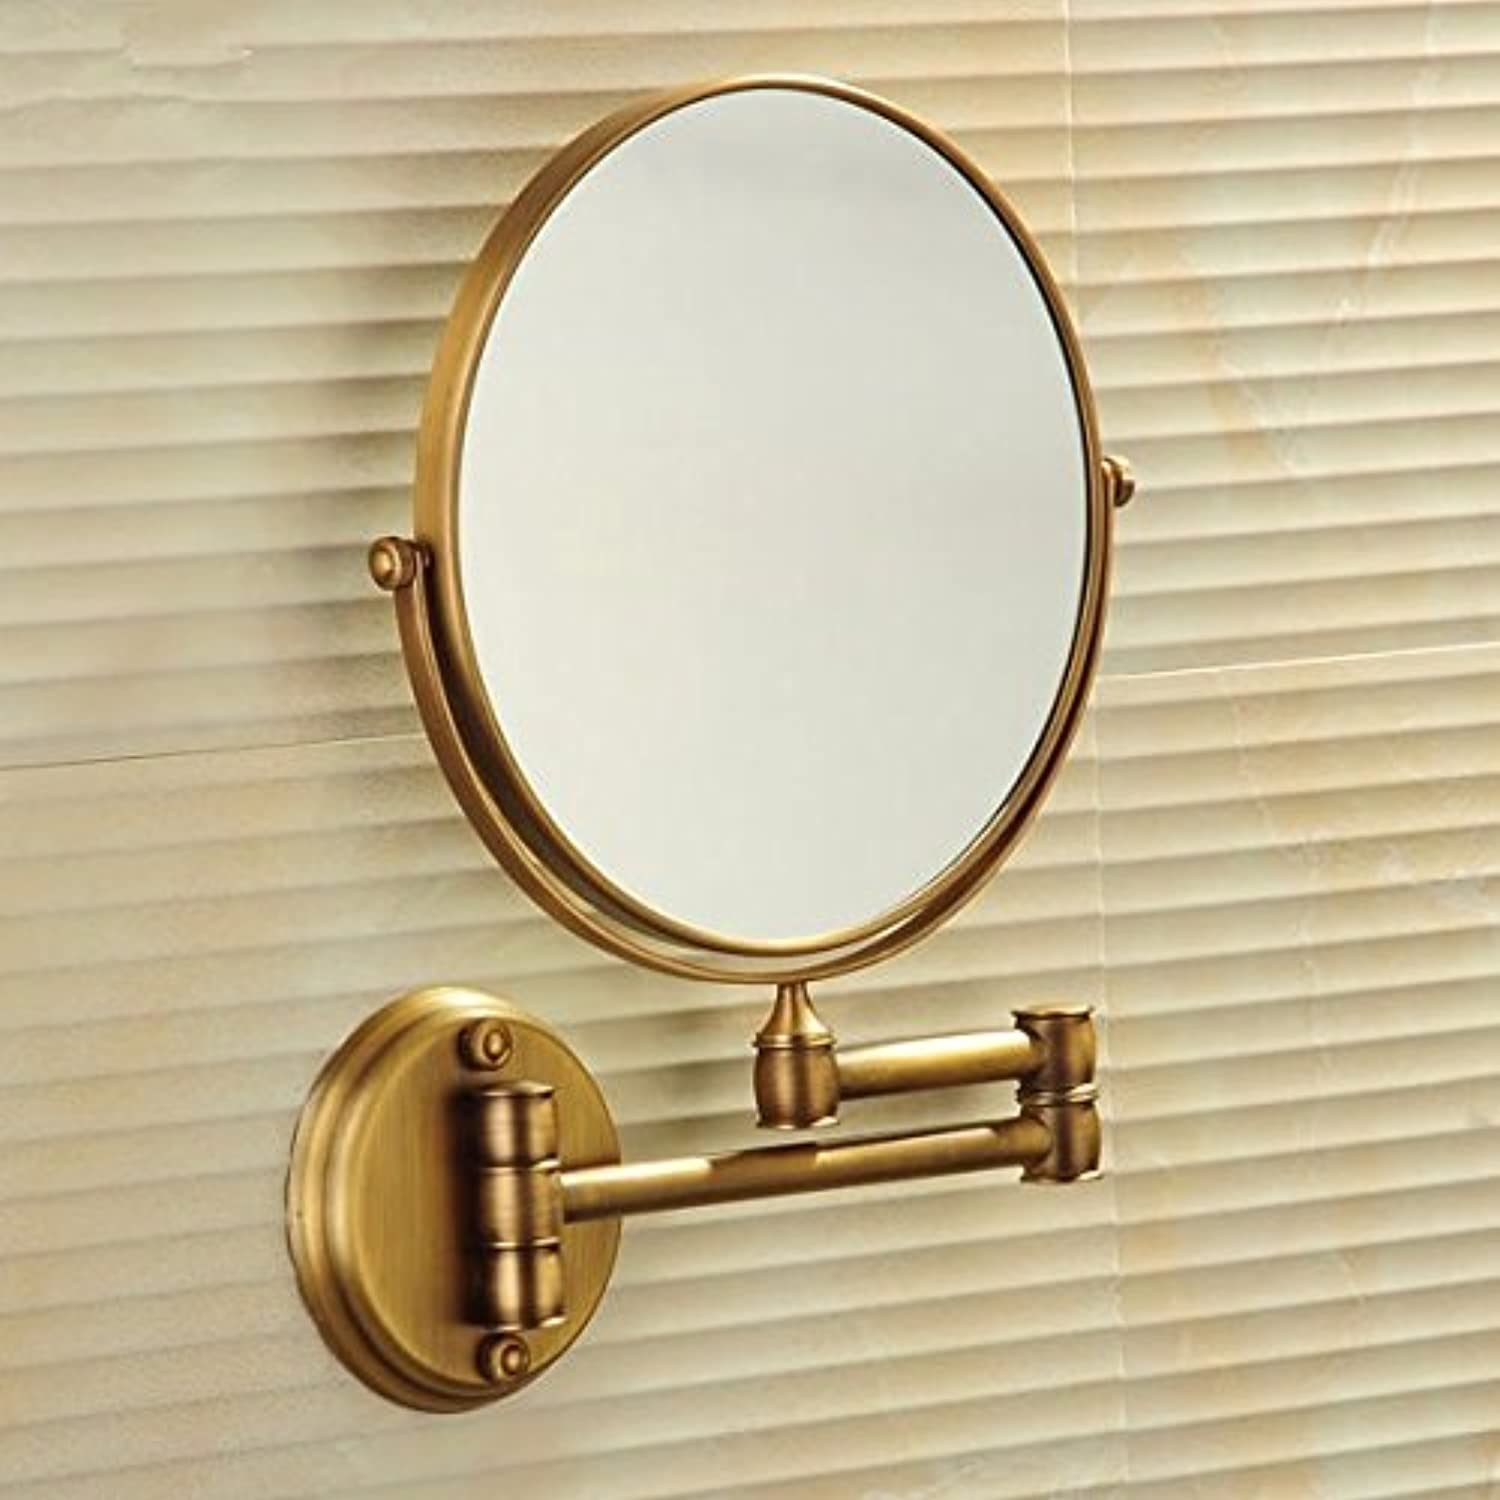 European antique beauty mirror wall mirror double-sided dressing mirror toilet telescopic mirror bathroom magnifying glass-8 inch Antique color